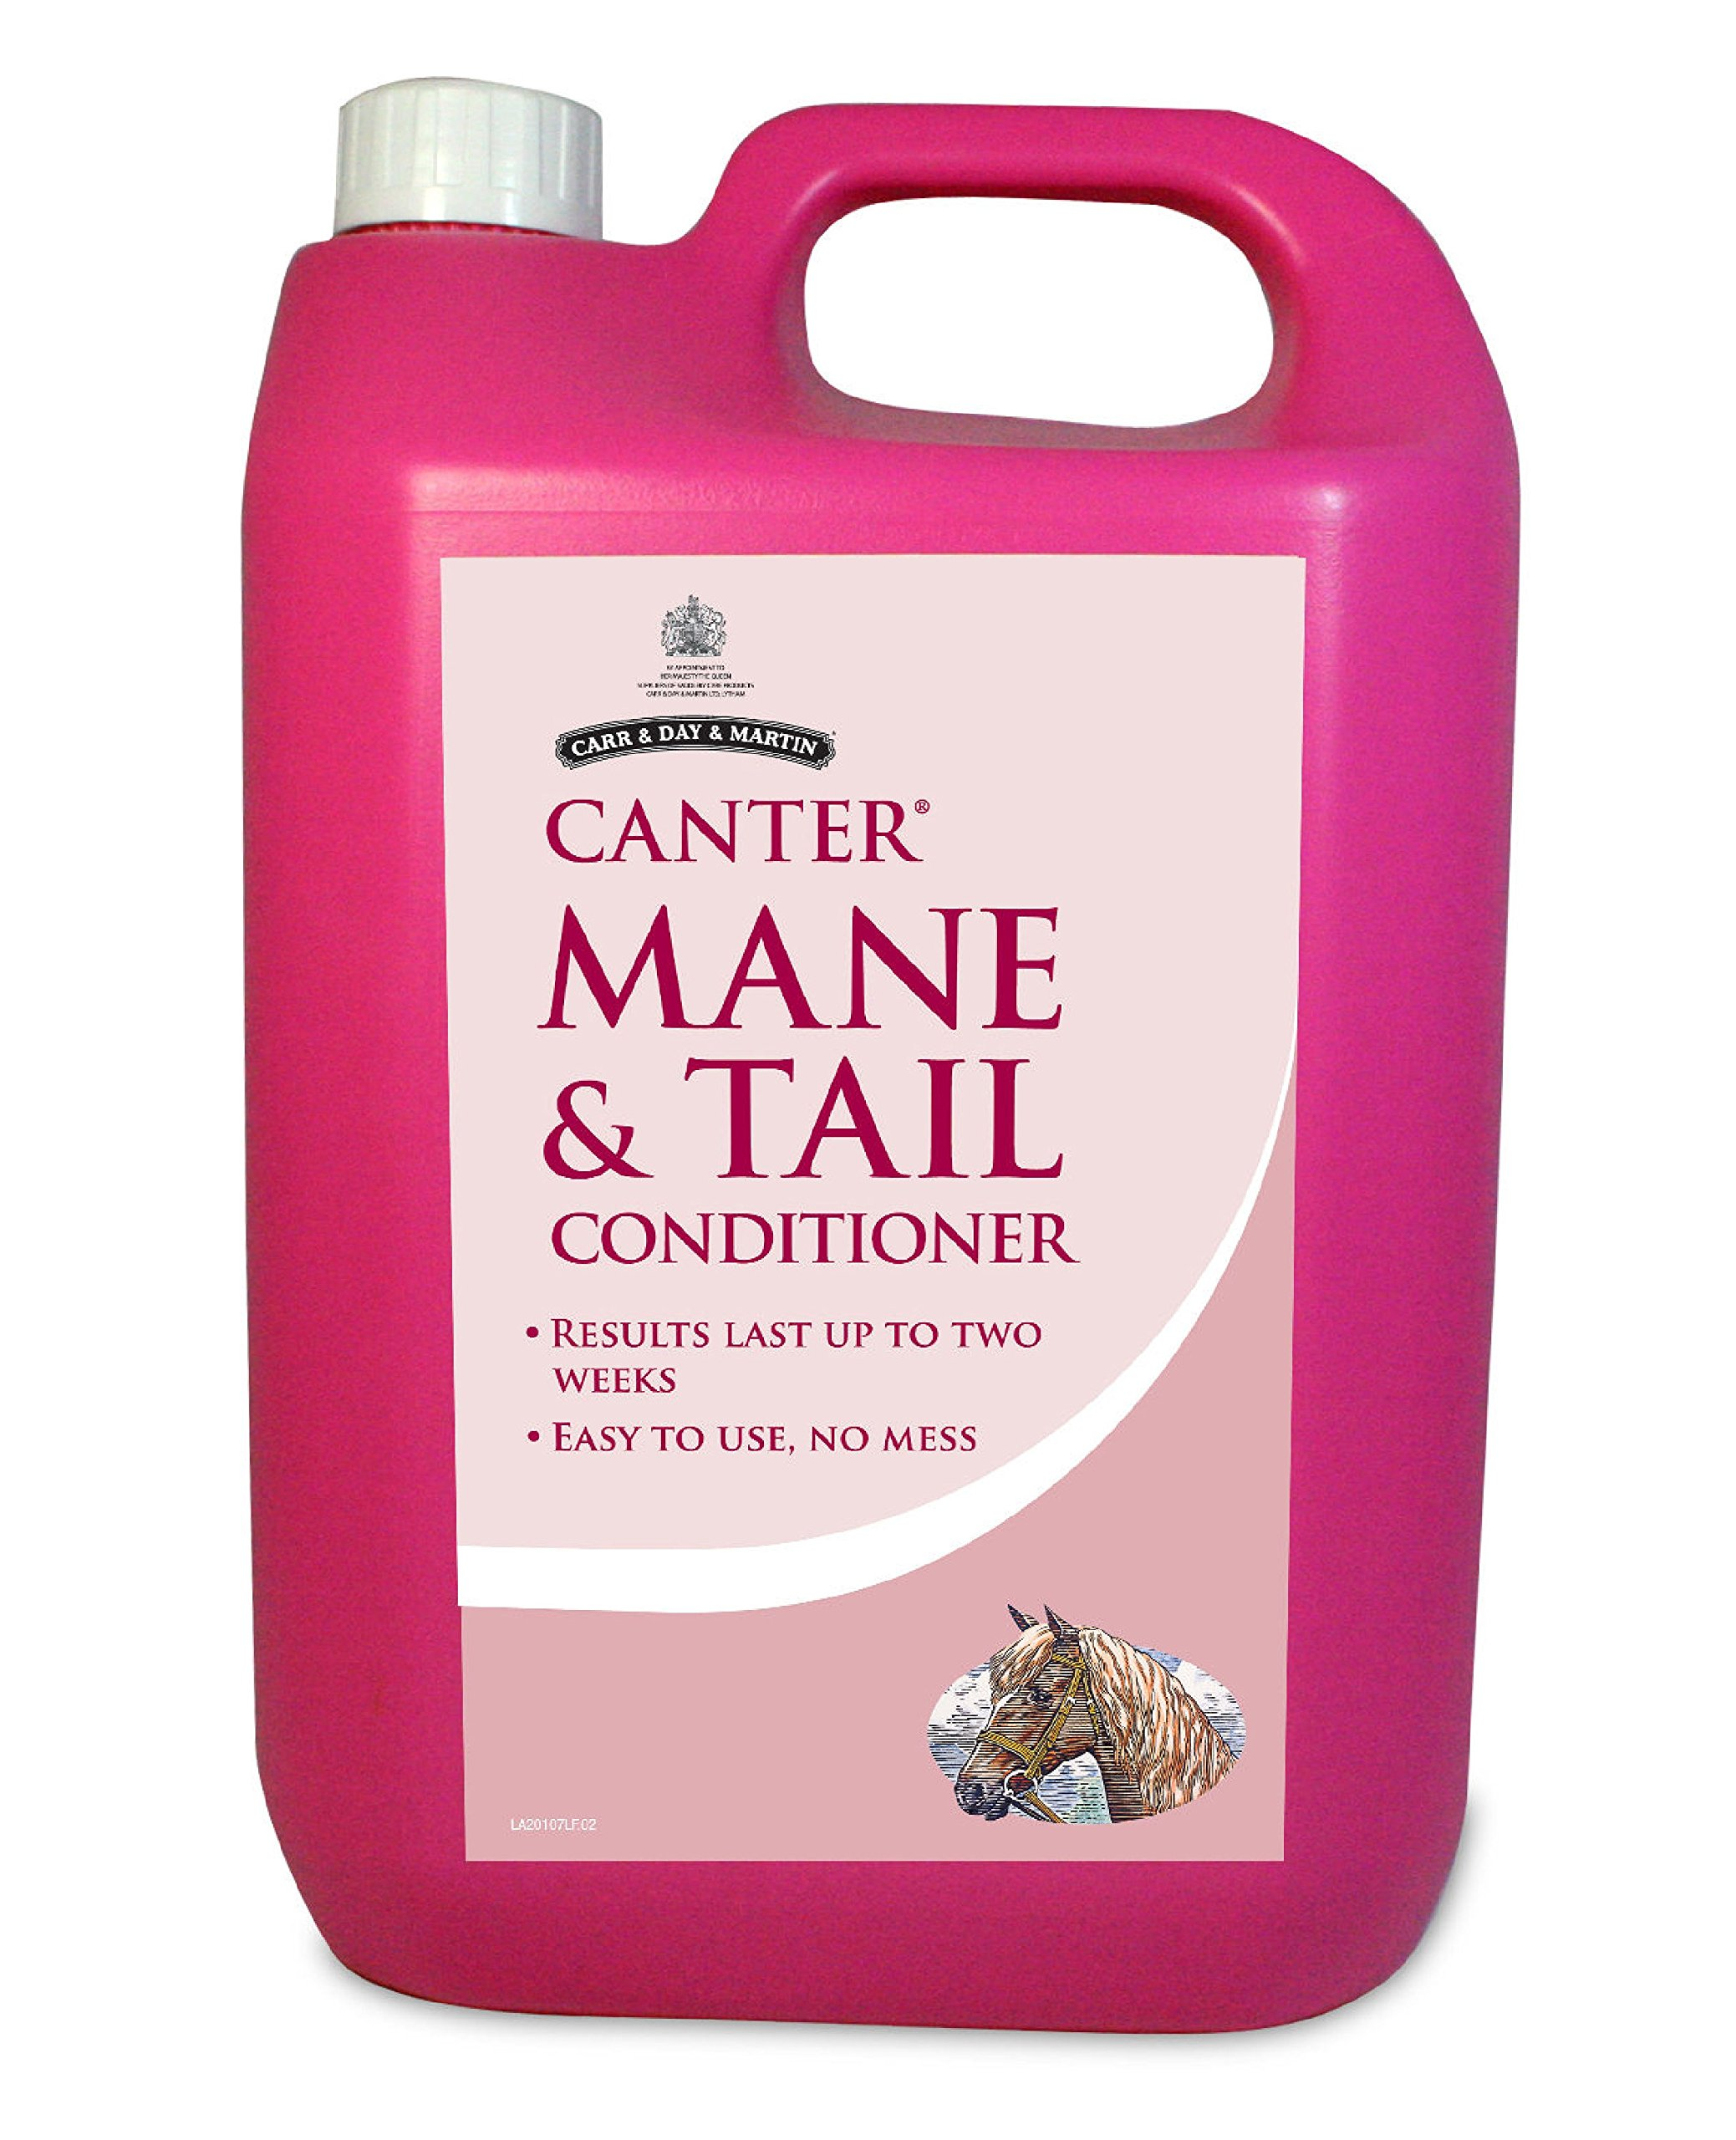 Canter Mane and Tail Conditioner 5 liter refill by Carr & Day & Martin